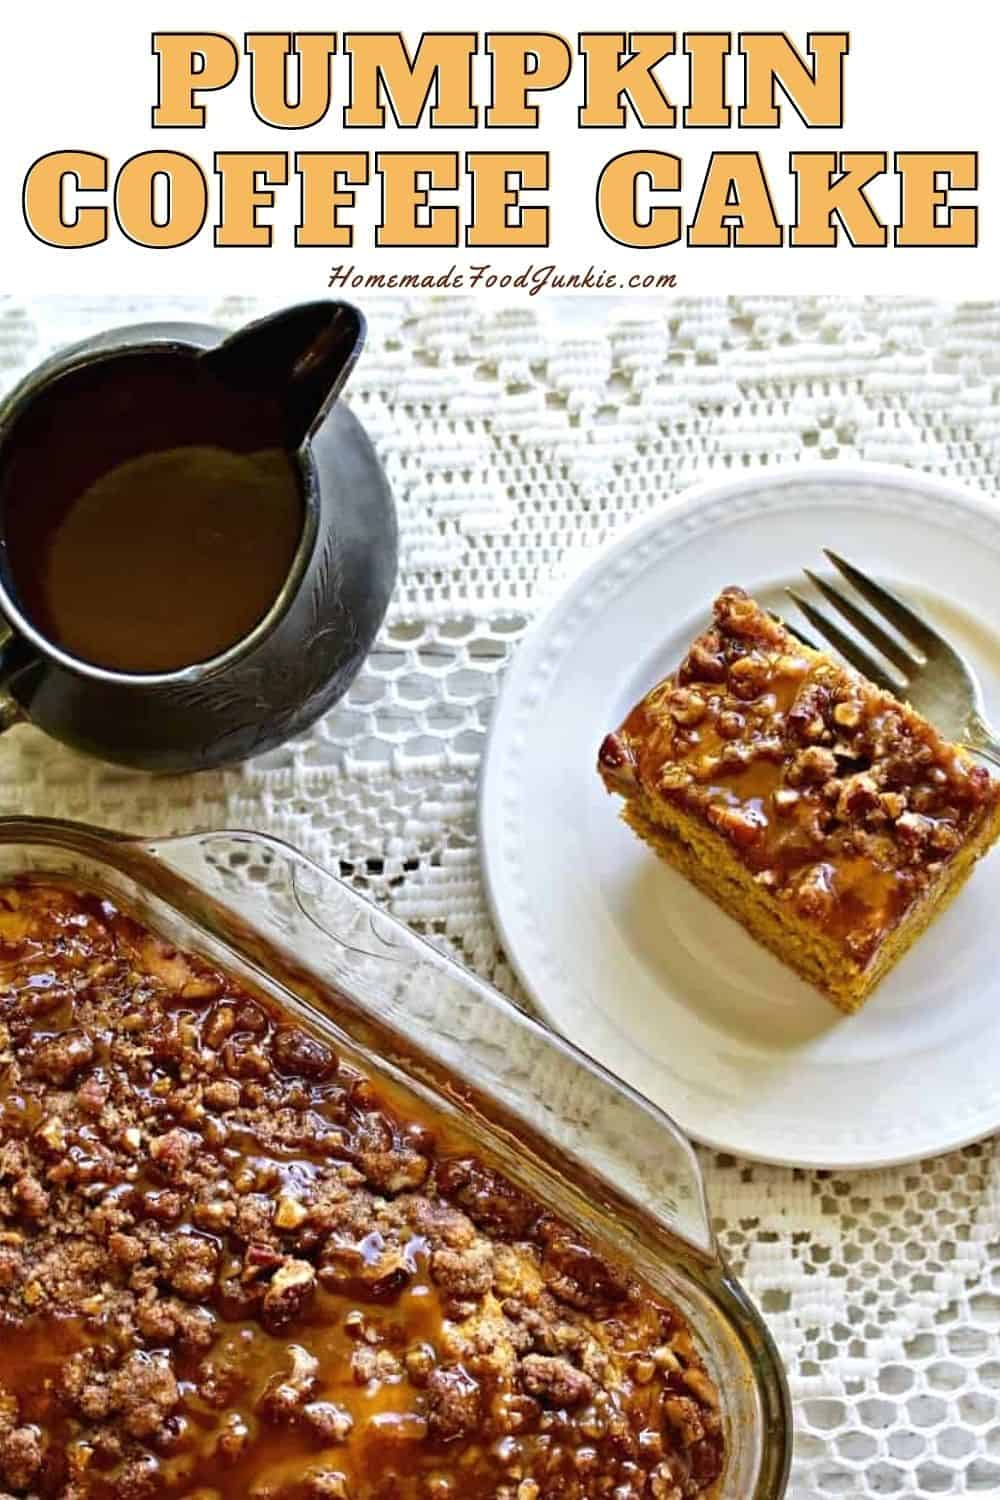 Pumpkin coffee cake-pin image